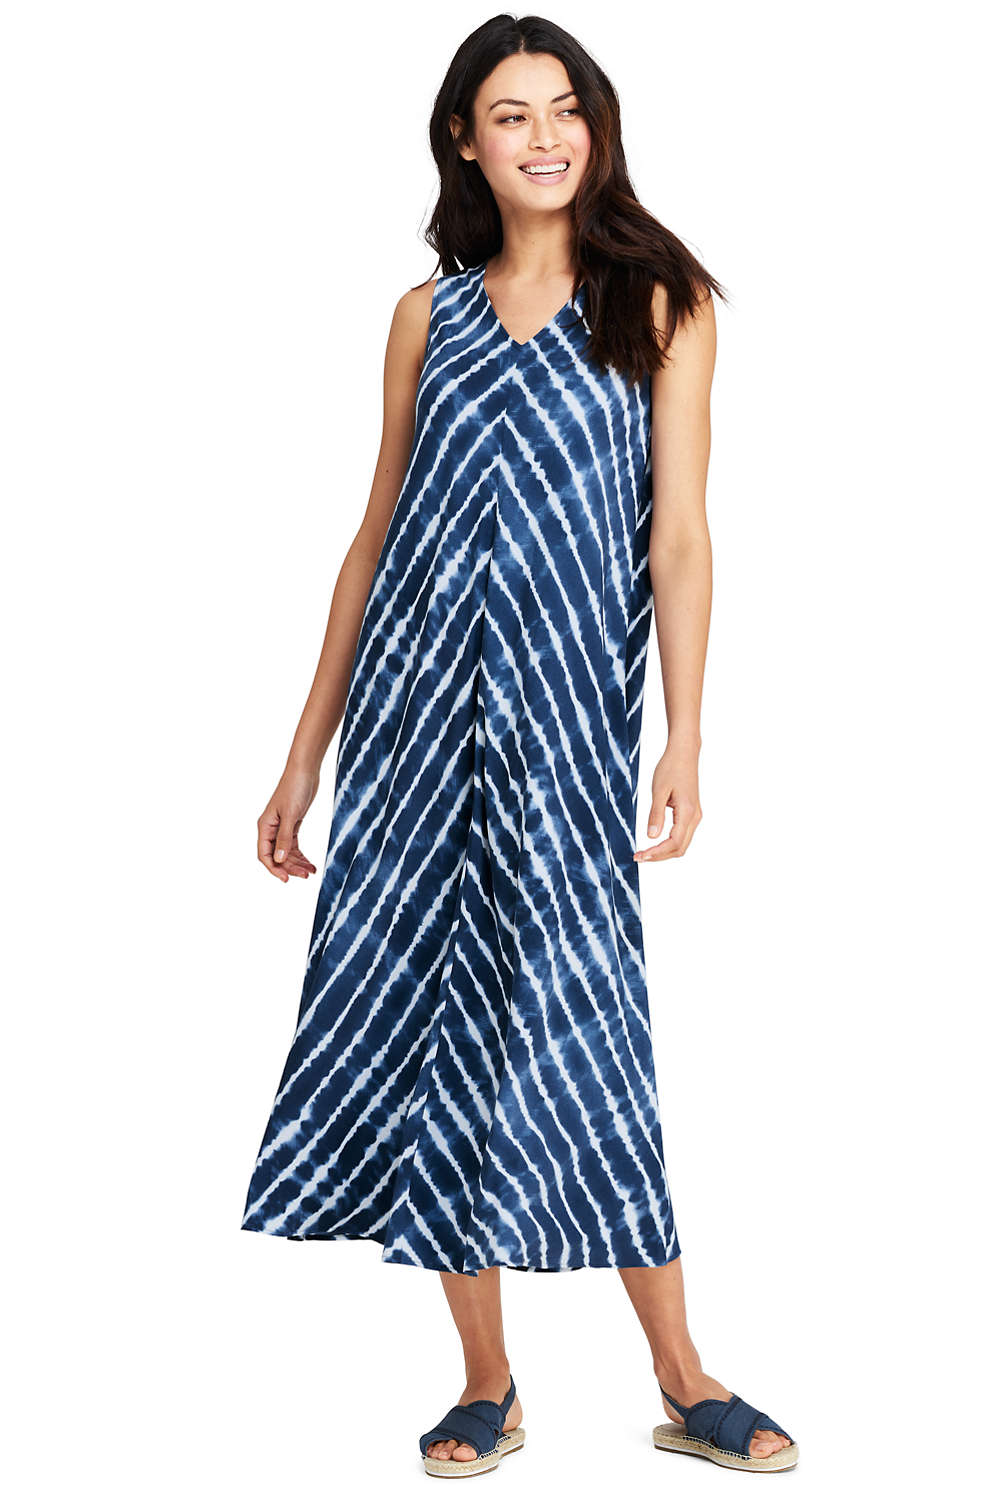 7186f59760 Women s Sleeveless Woven V-neck Midi Shibori Stripe Trapeze Dress from  Lands  End